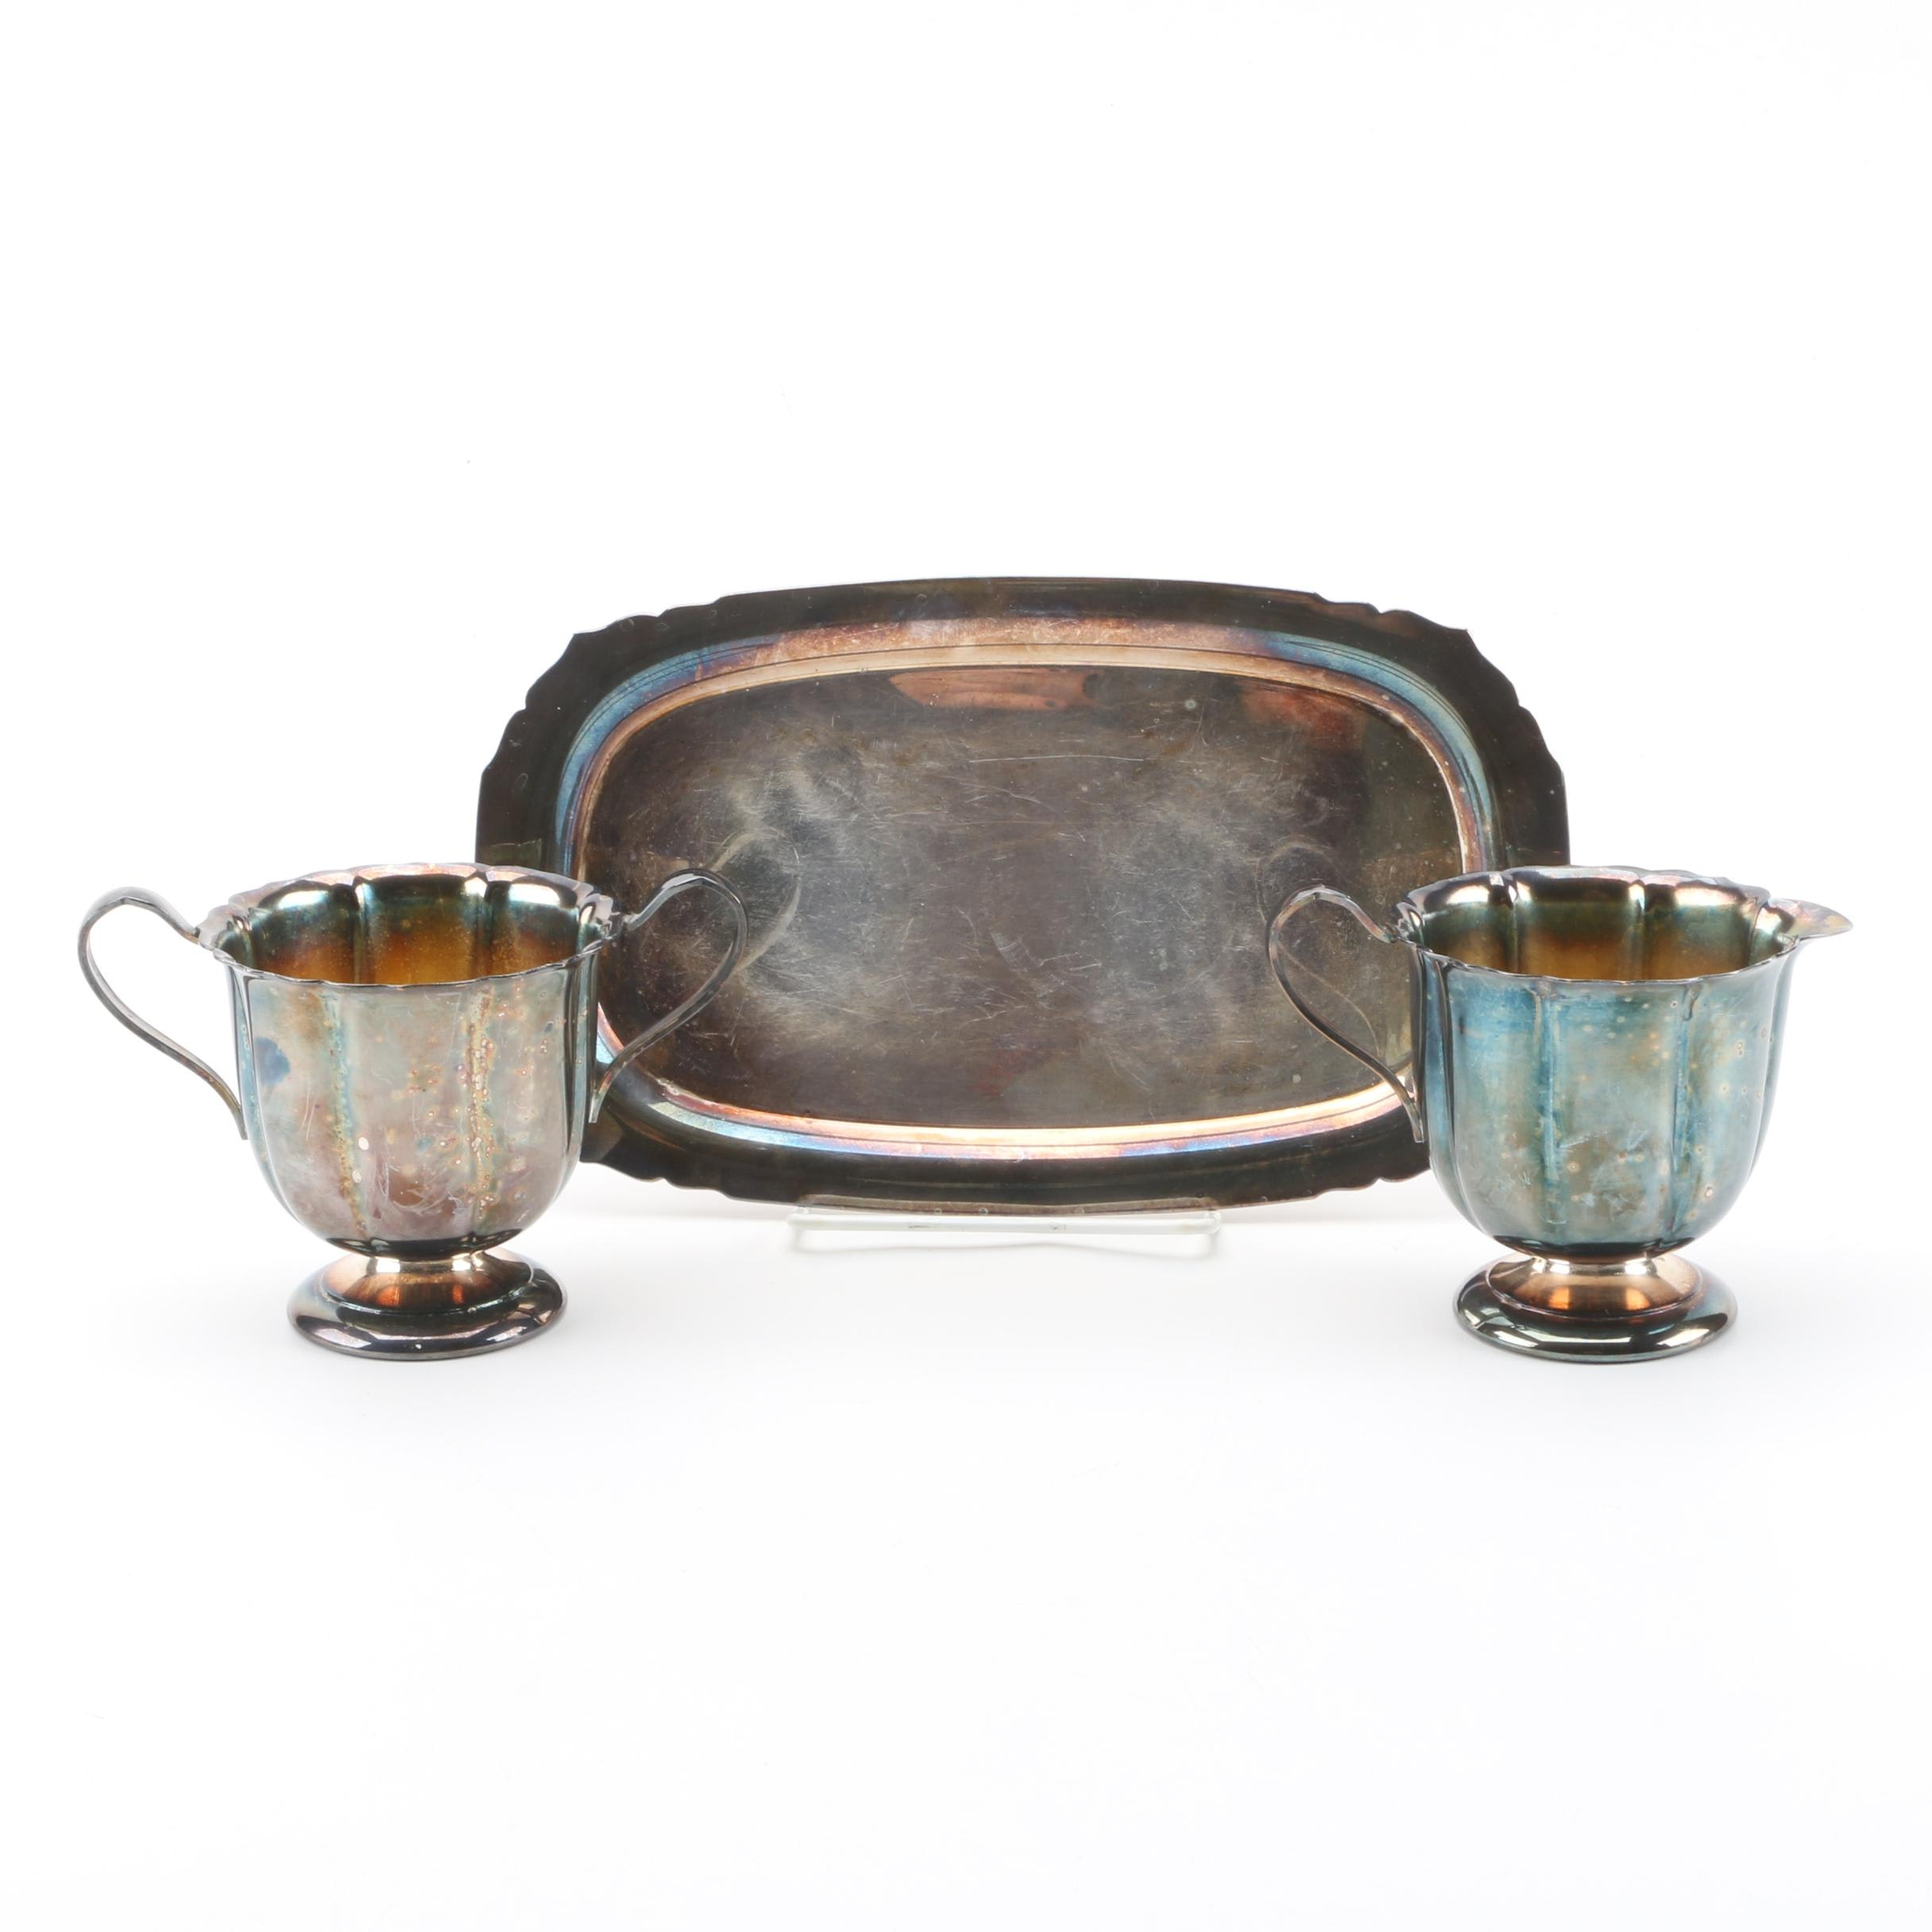 International Silver Co. Silver Plate Creamer and Sugar Set with Wm. Rogers Tray